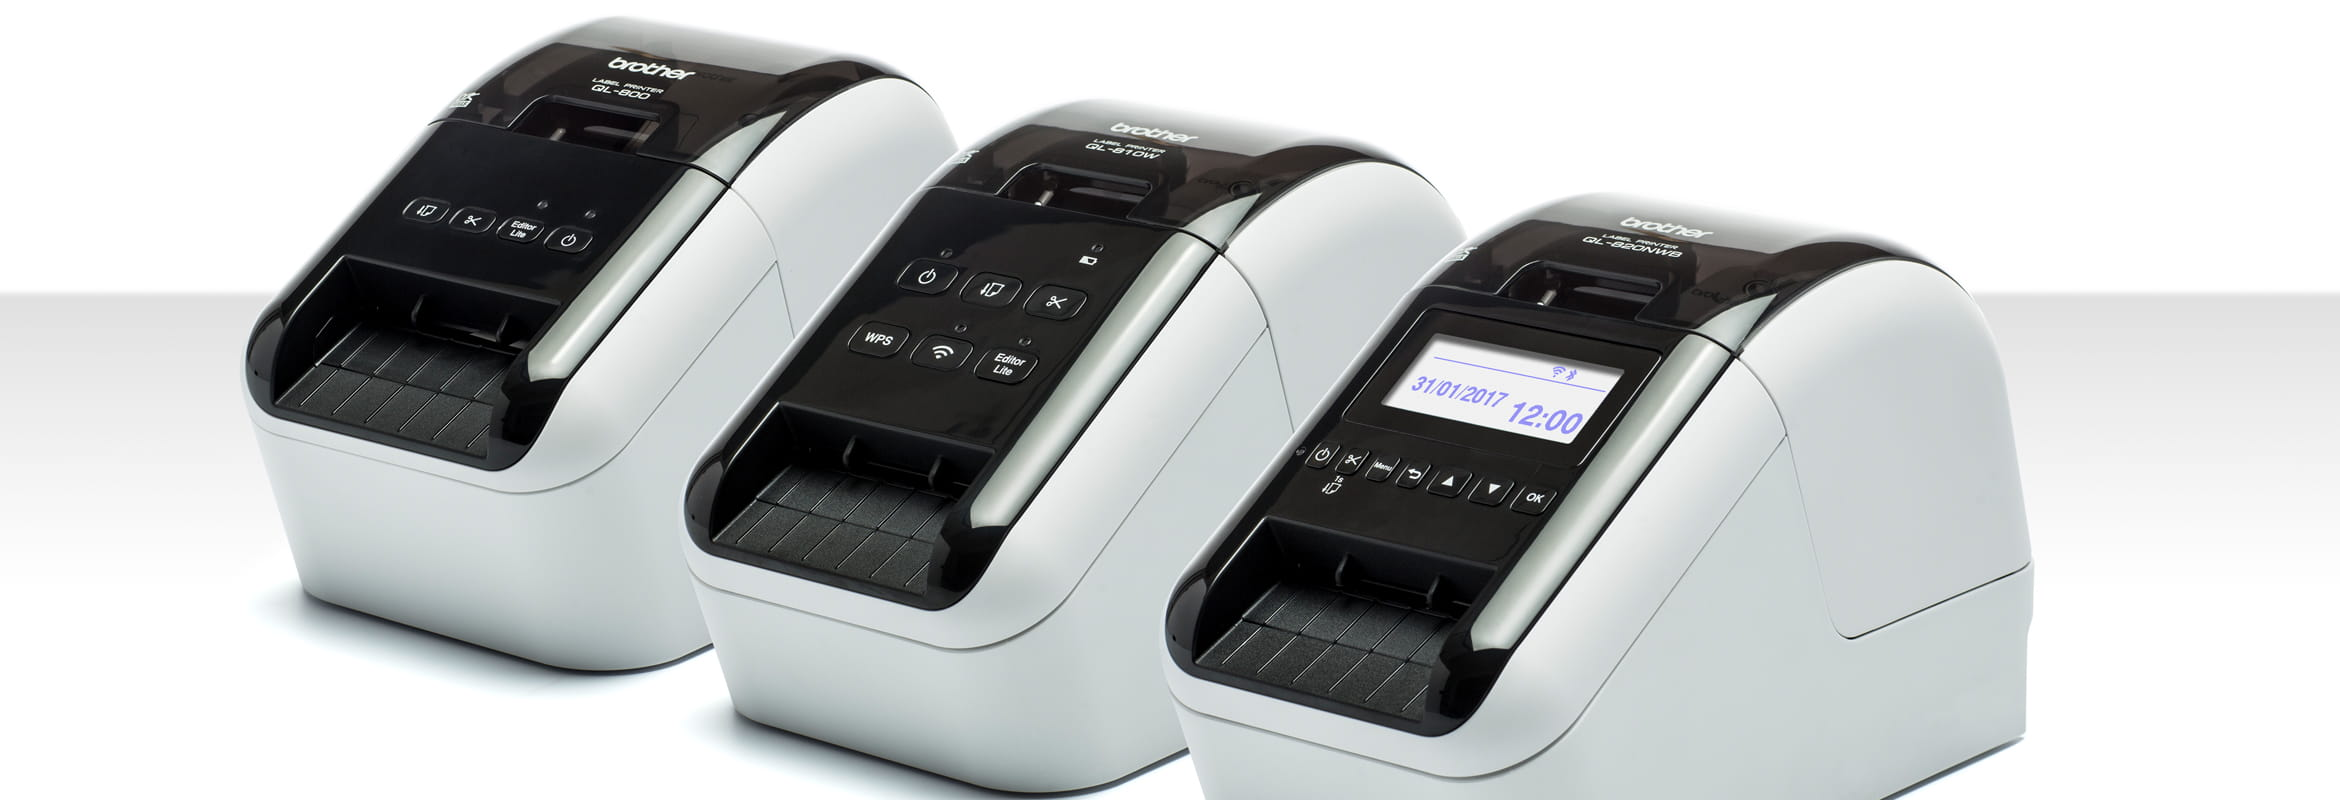 QL-800 Label Printer Range